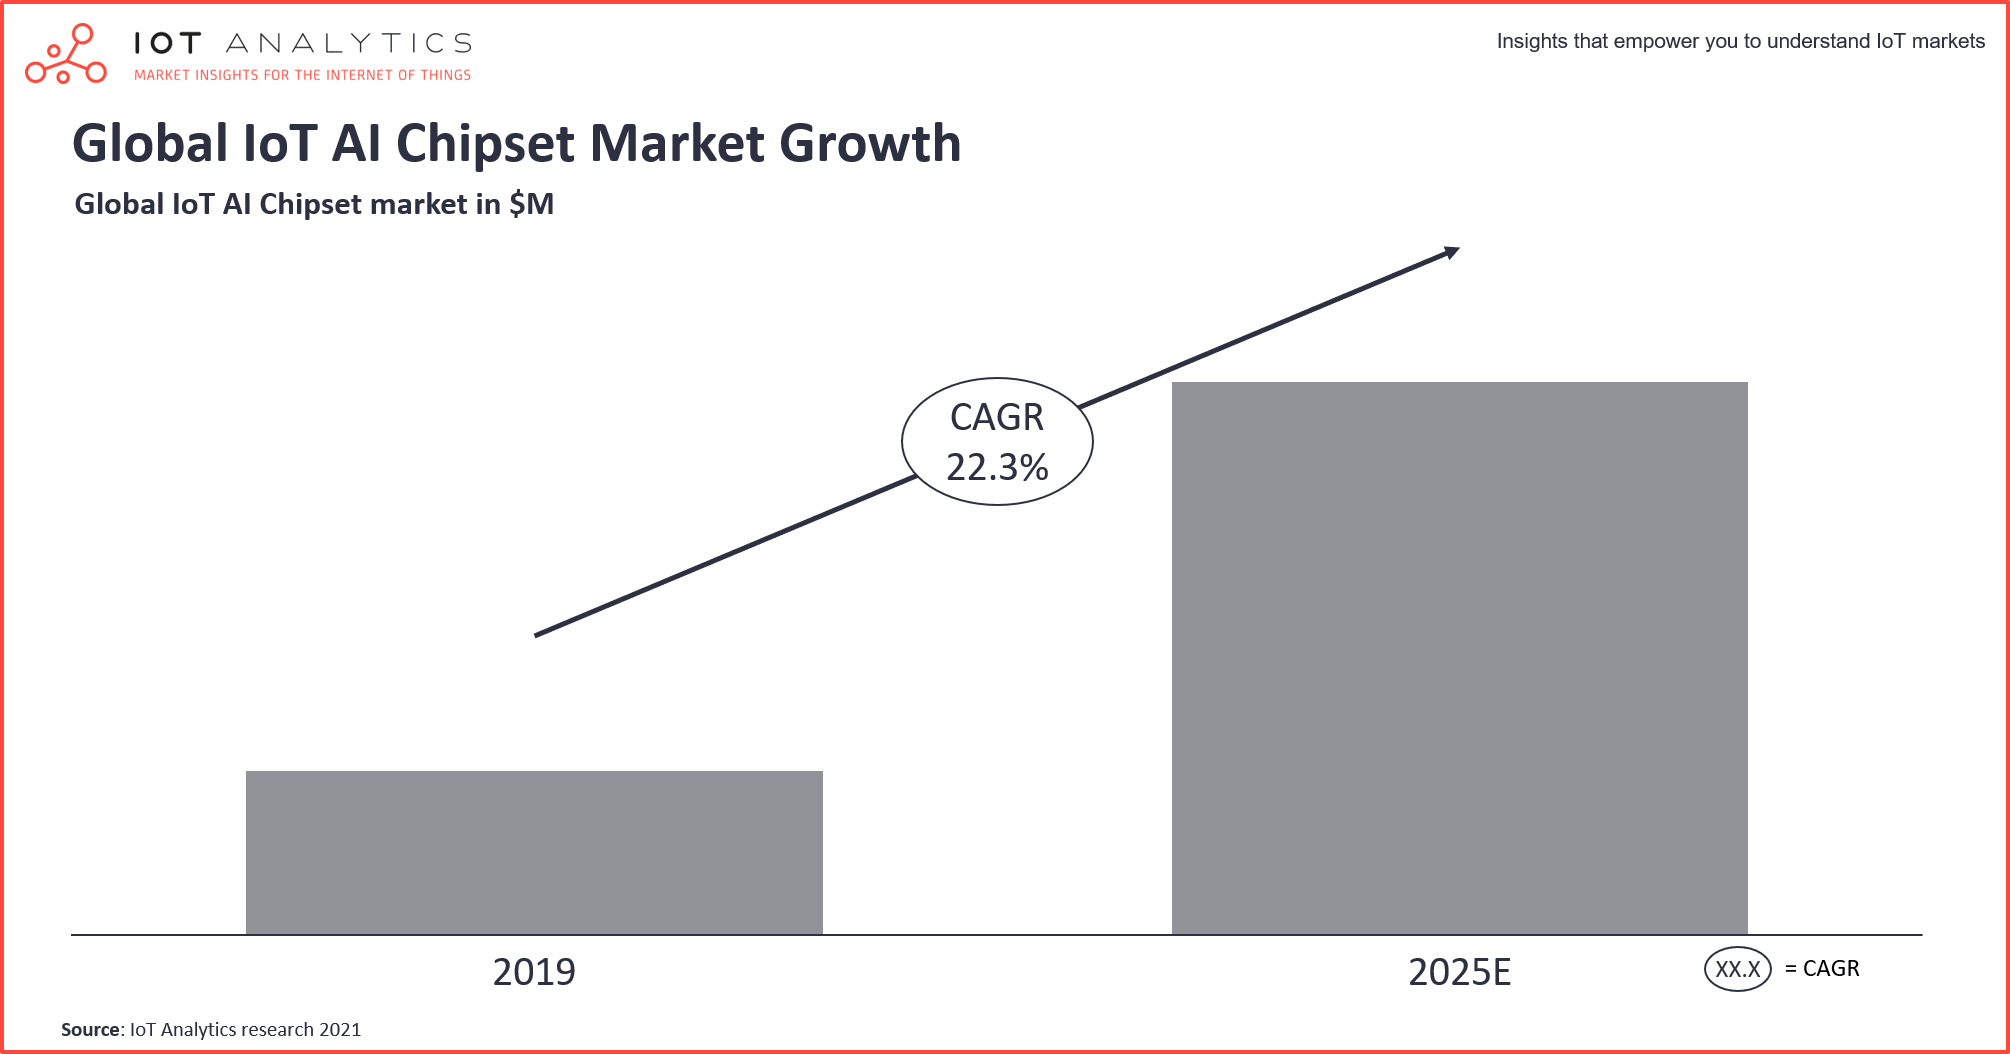 The Rise of the IoT Semiconductor - Global IoT AI Chipset Market Growth